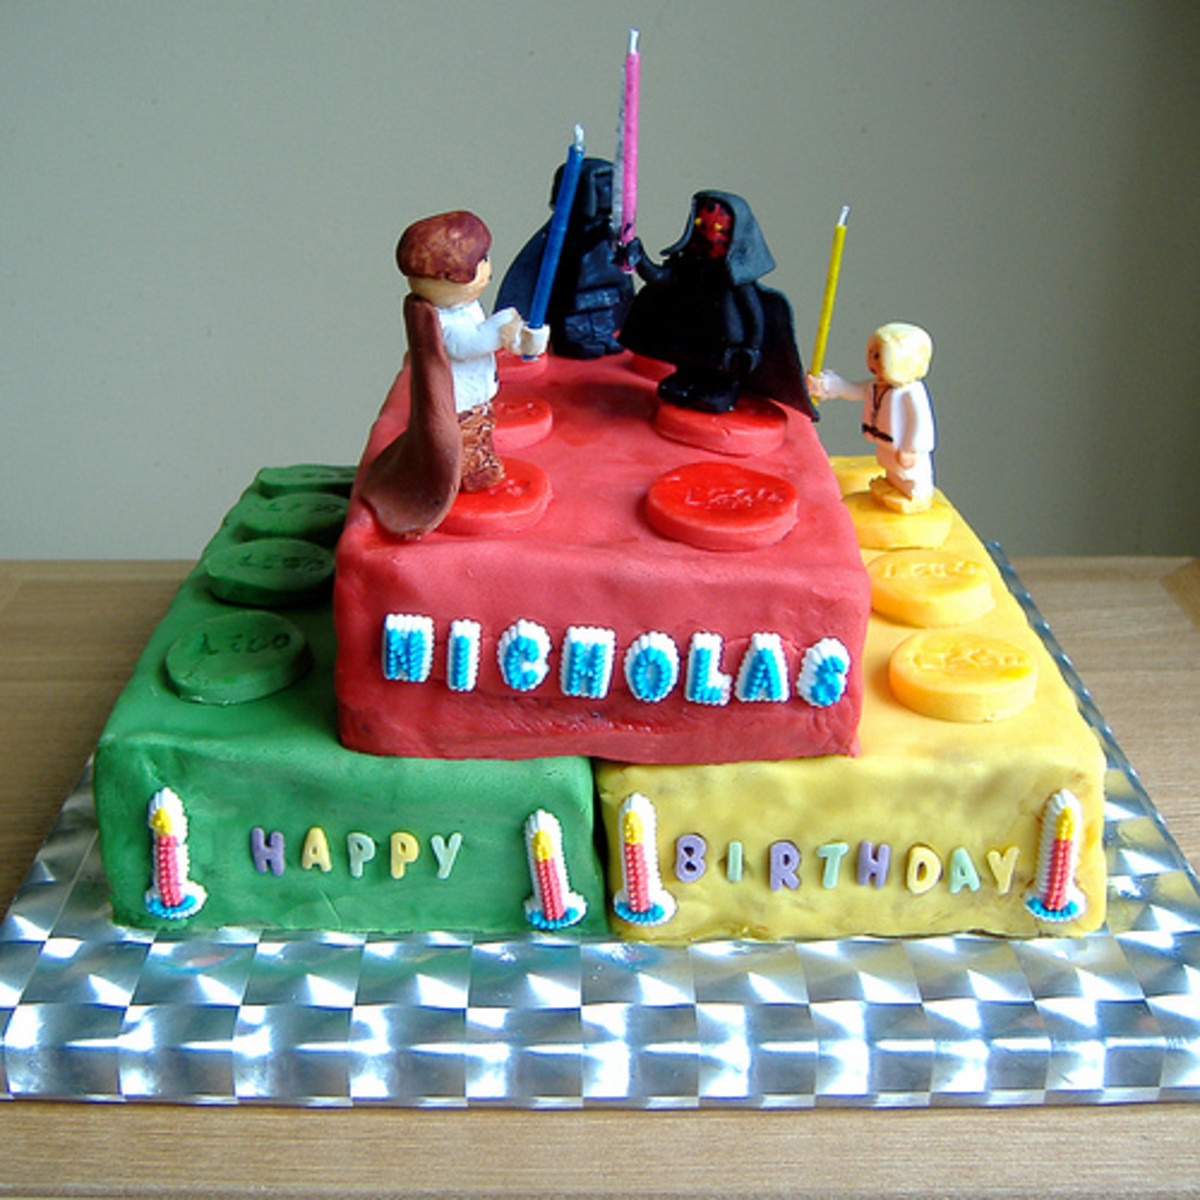 Lego Star Wars birthday cake.